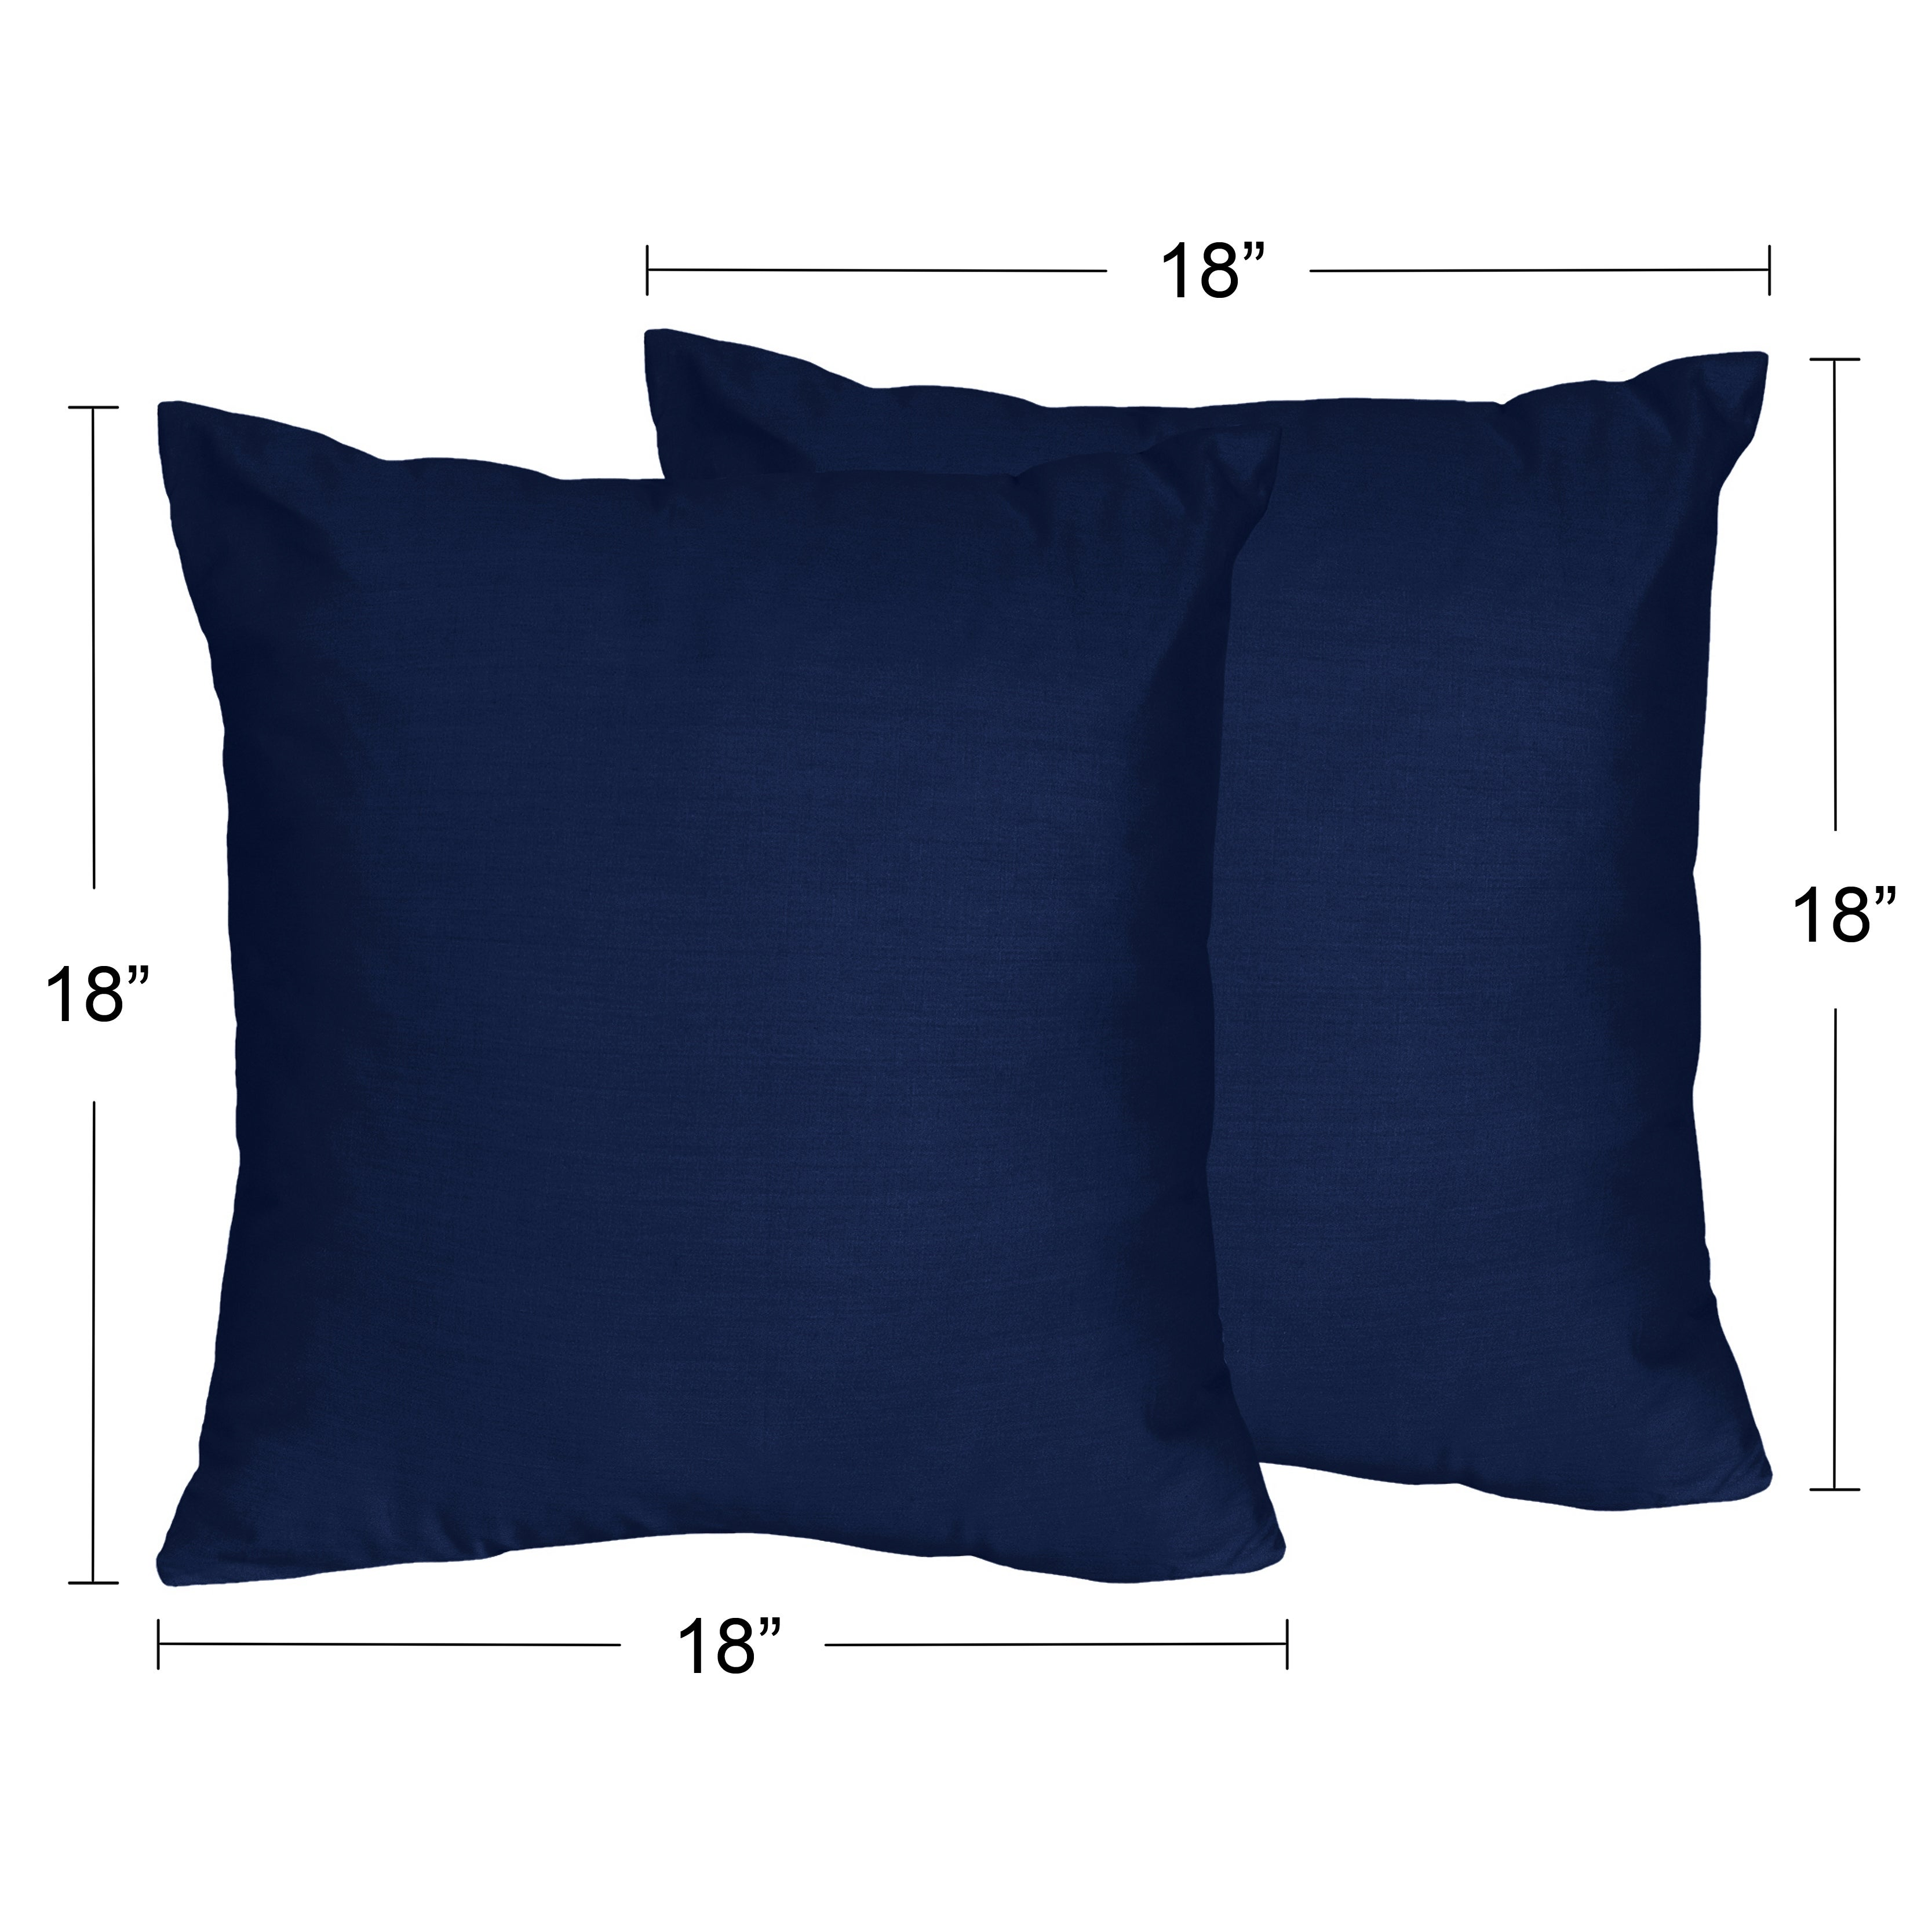 Sweet Jojo Designs Navy Blue And Grey Stripe Collection Decorative 18 Inch Accent Throw Pillows Set Of 2 Overstock 12777704